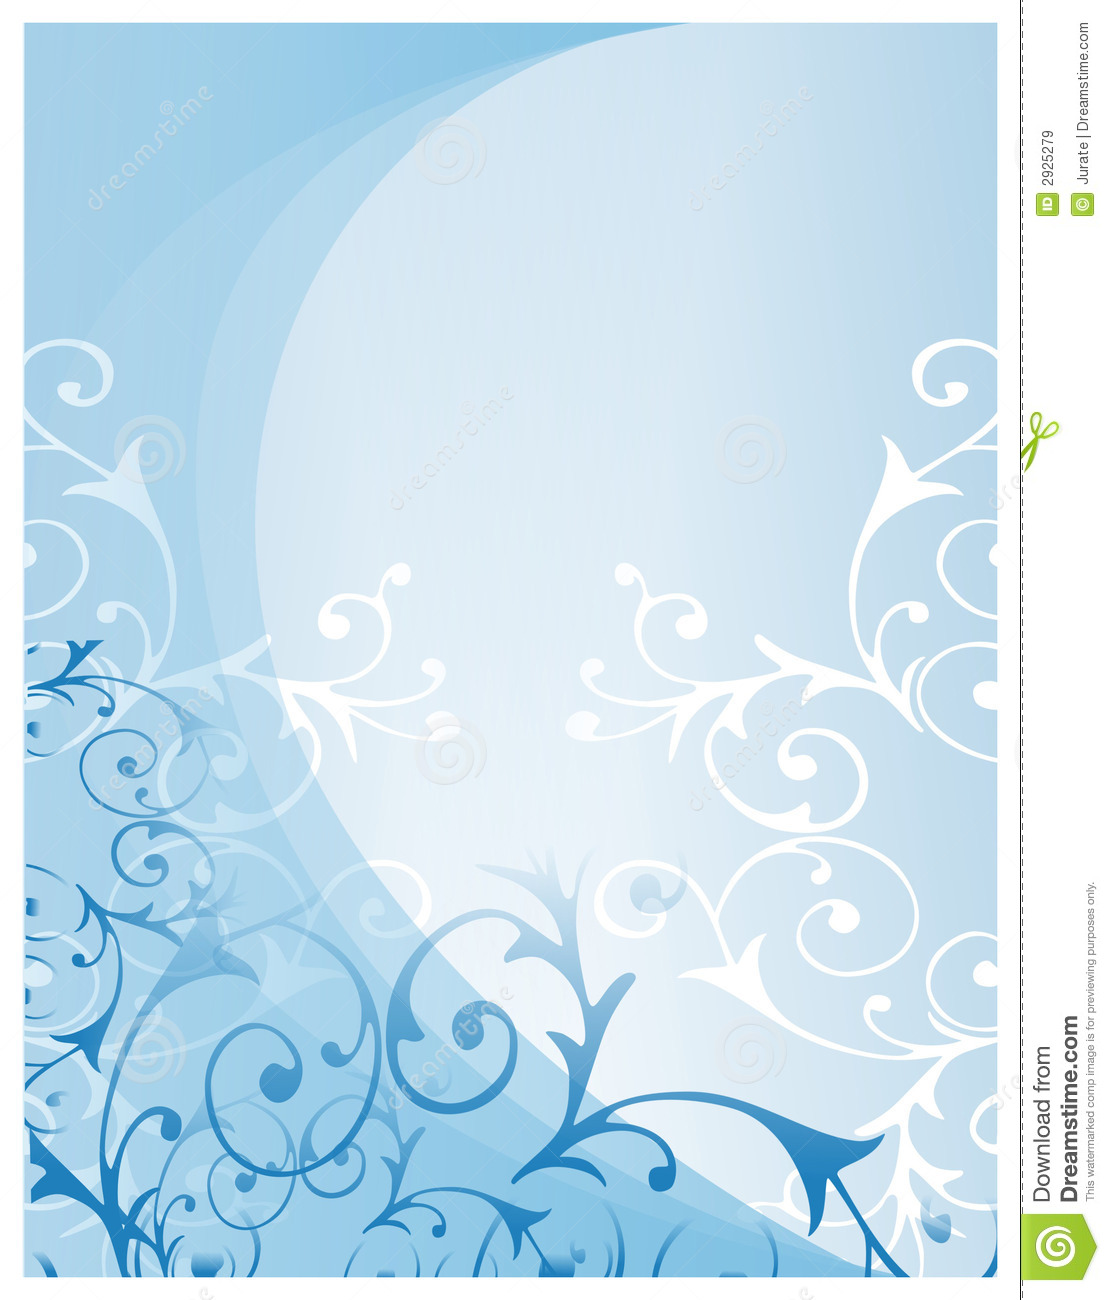 Light Background Stock Vector Illustration Of Snow